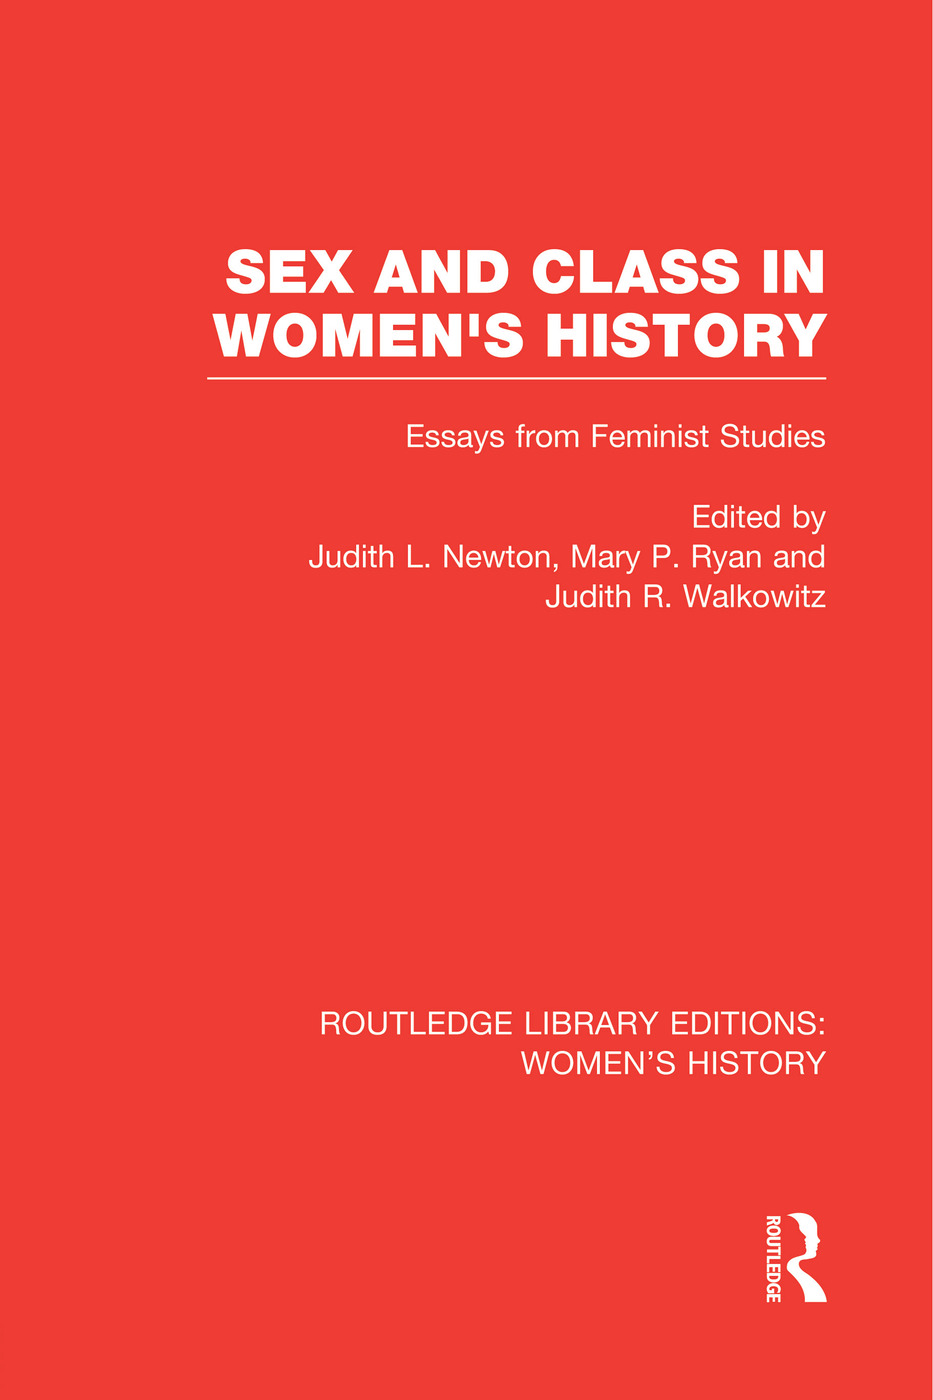 Sex and Class in Women's History: Essays from Feminist Studies book cover